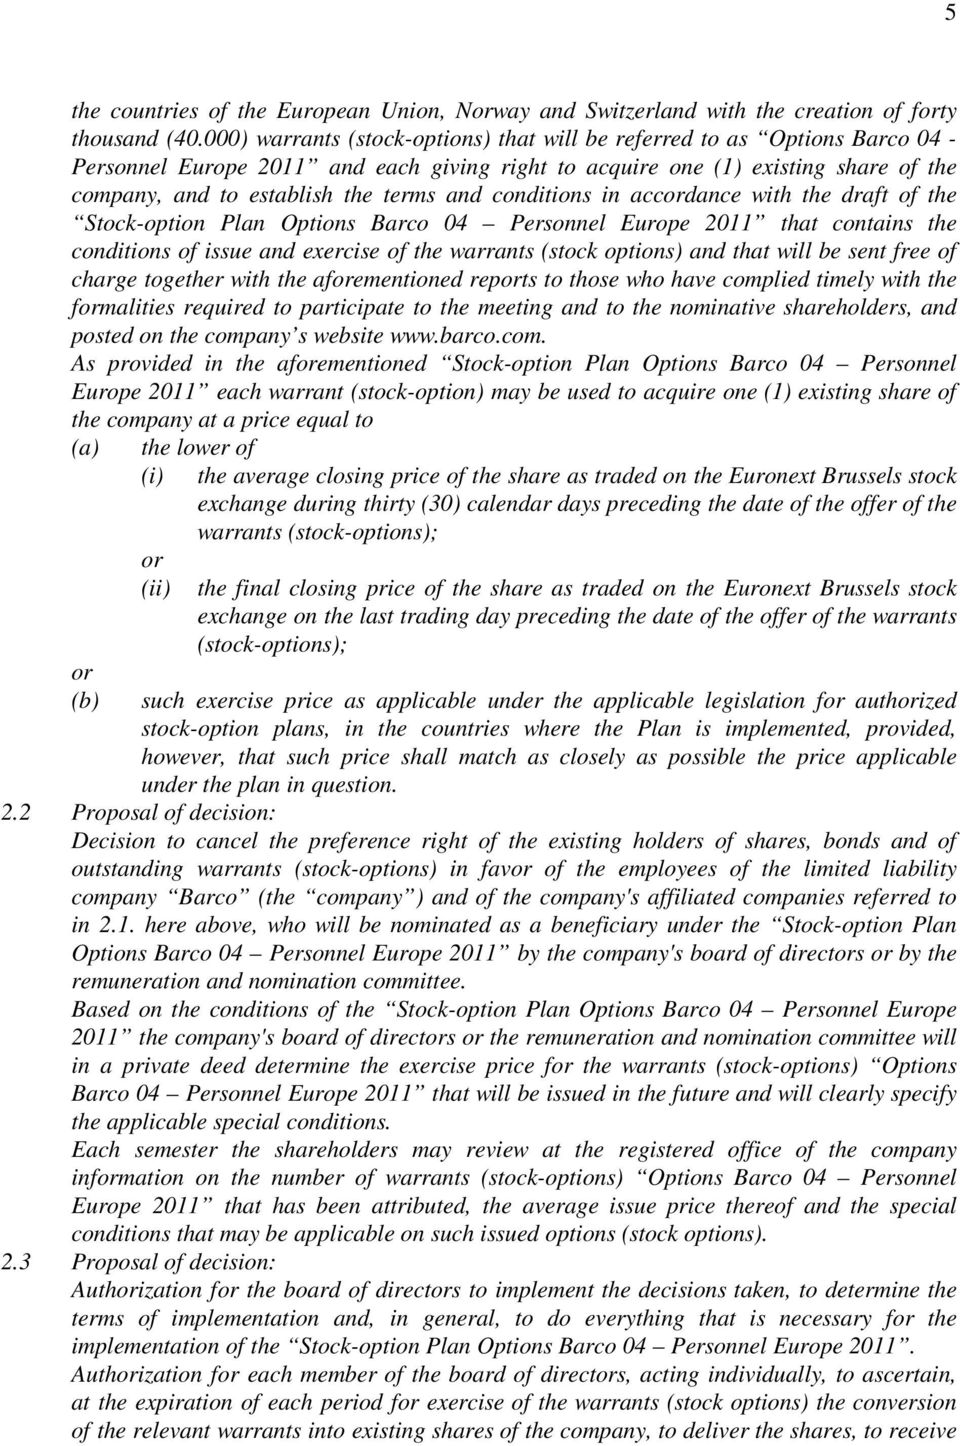 and conditions in accdance with the draft of the Stock-option Plan Options Barco 04 Personnel Europe 2011 that contains the conditions of issue and exercise of the warrants (stock options) and that